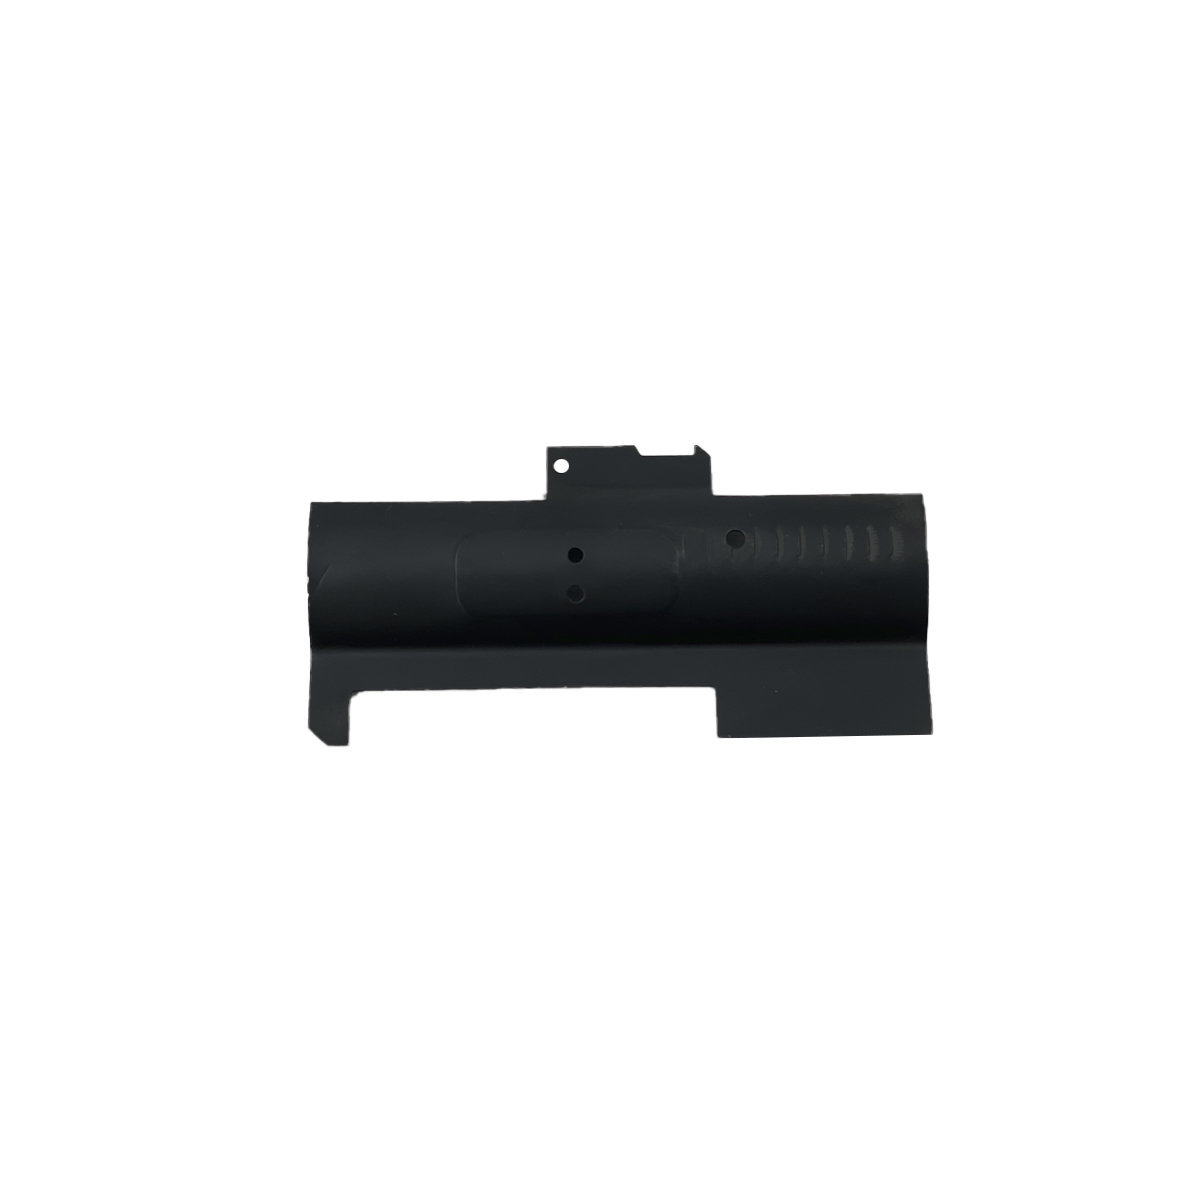 View larger image of Valken Dust Cover for Alloy Series Airsoft AEGs